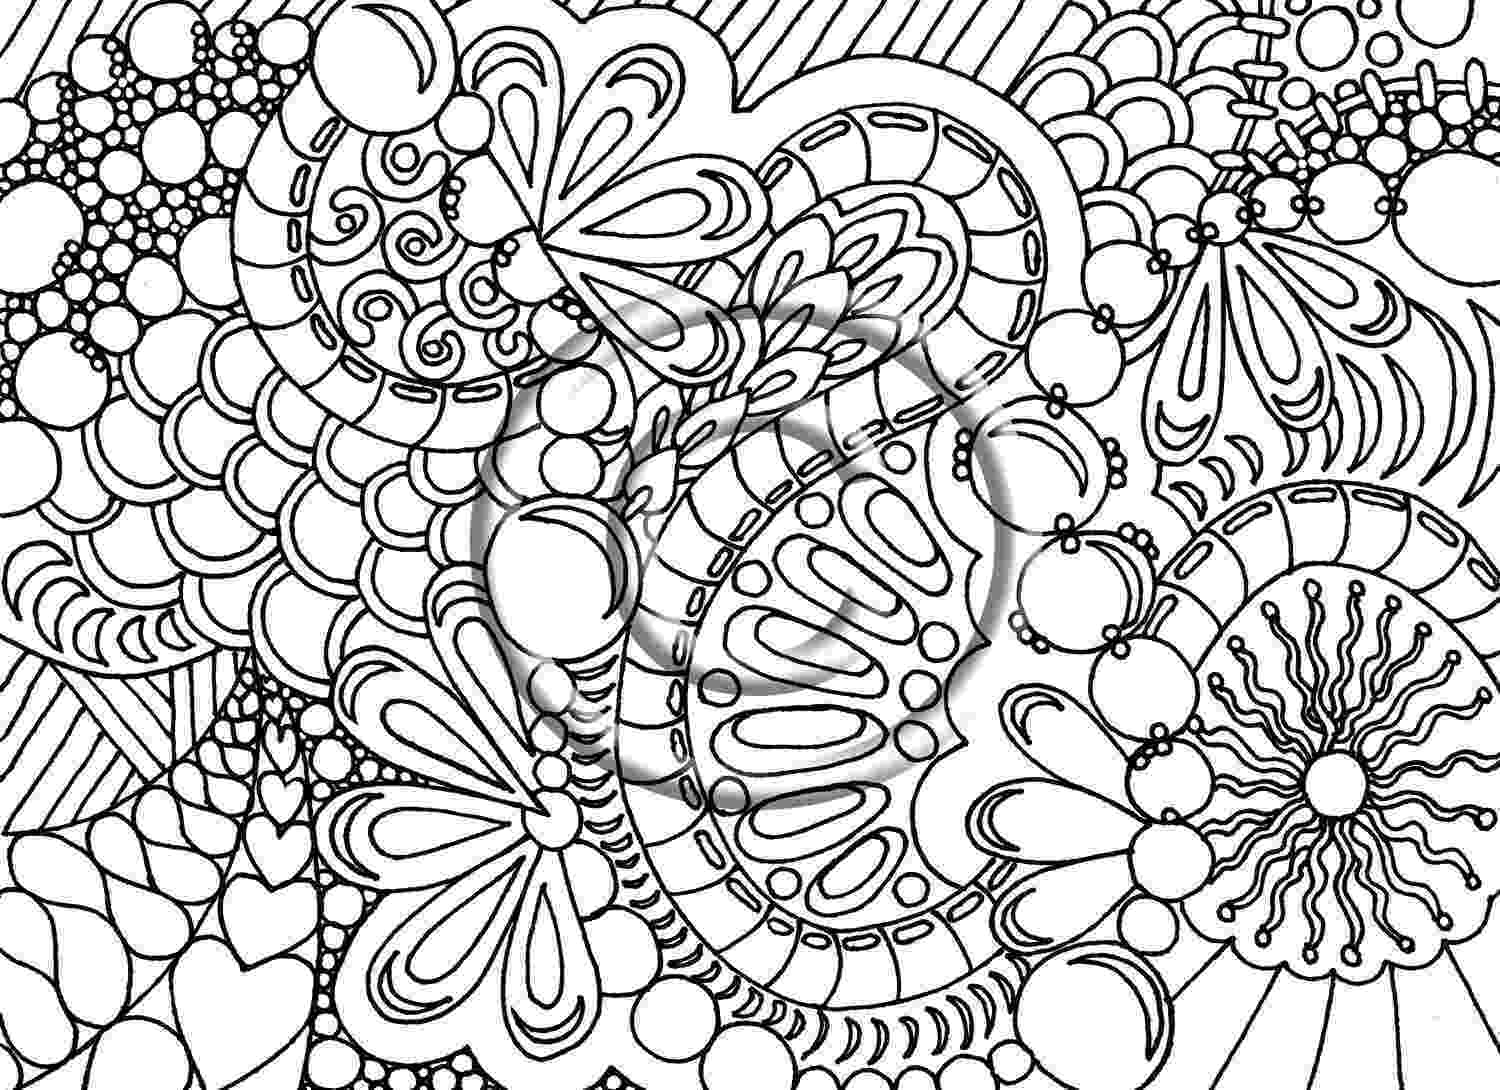 adult coloring pages abstract 23 best abstract coloring pages images on pinterest coloring pages abstract adult